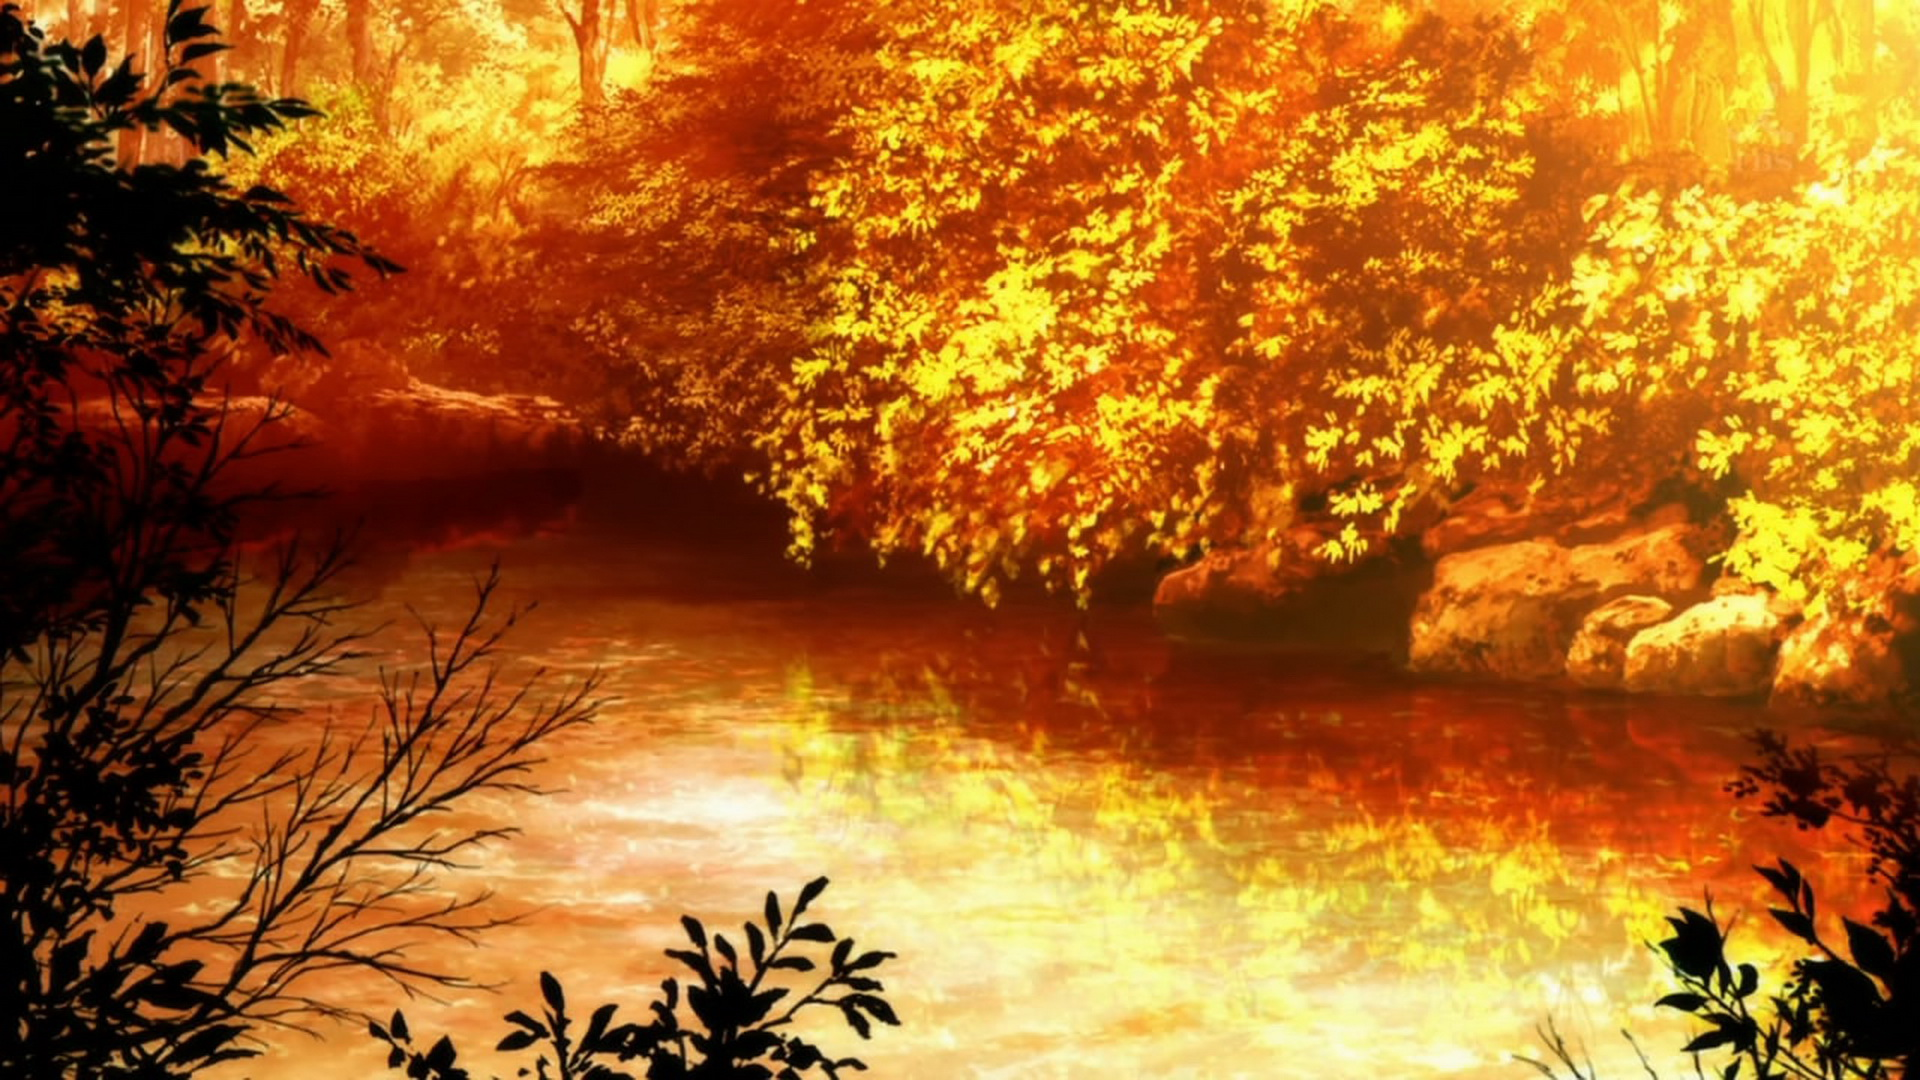 Anime Autumn Wallpaper Posted By Christopher Mercado